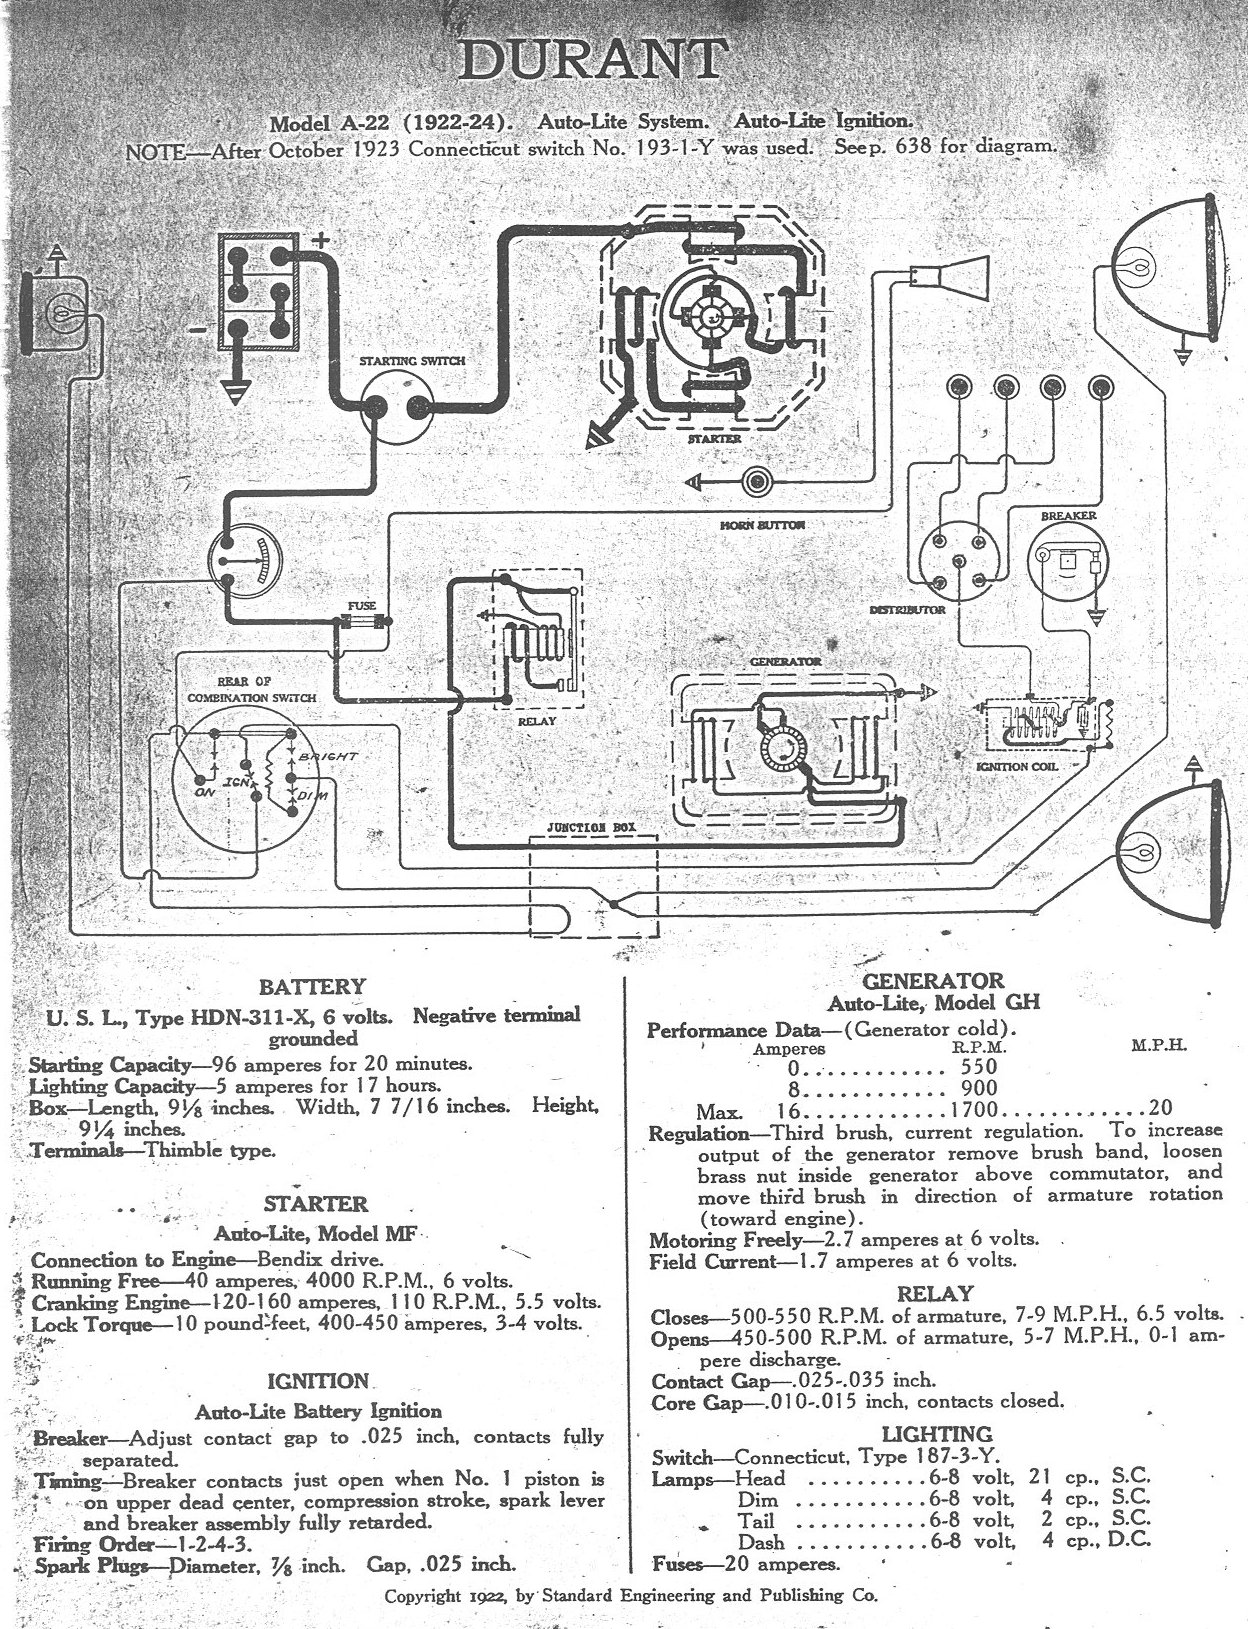 Durant Wiring Diagram Diagrams Electrical Junction Box Residential 1922 1929 Rh Dmacweb Com Basic